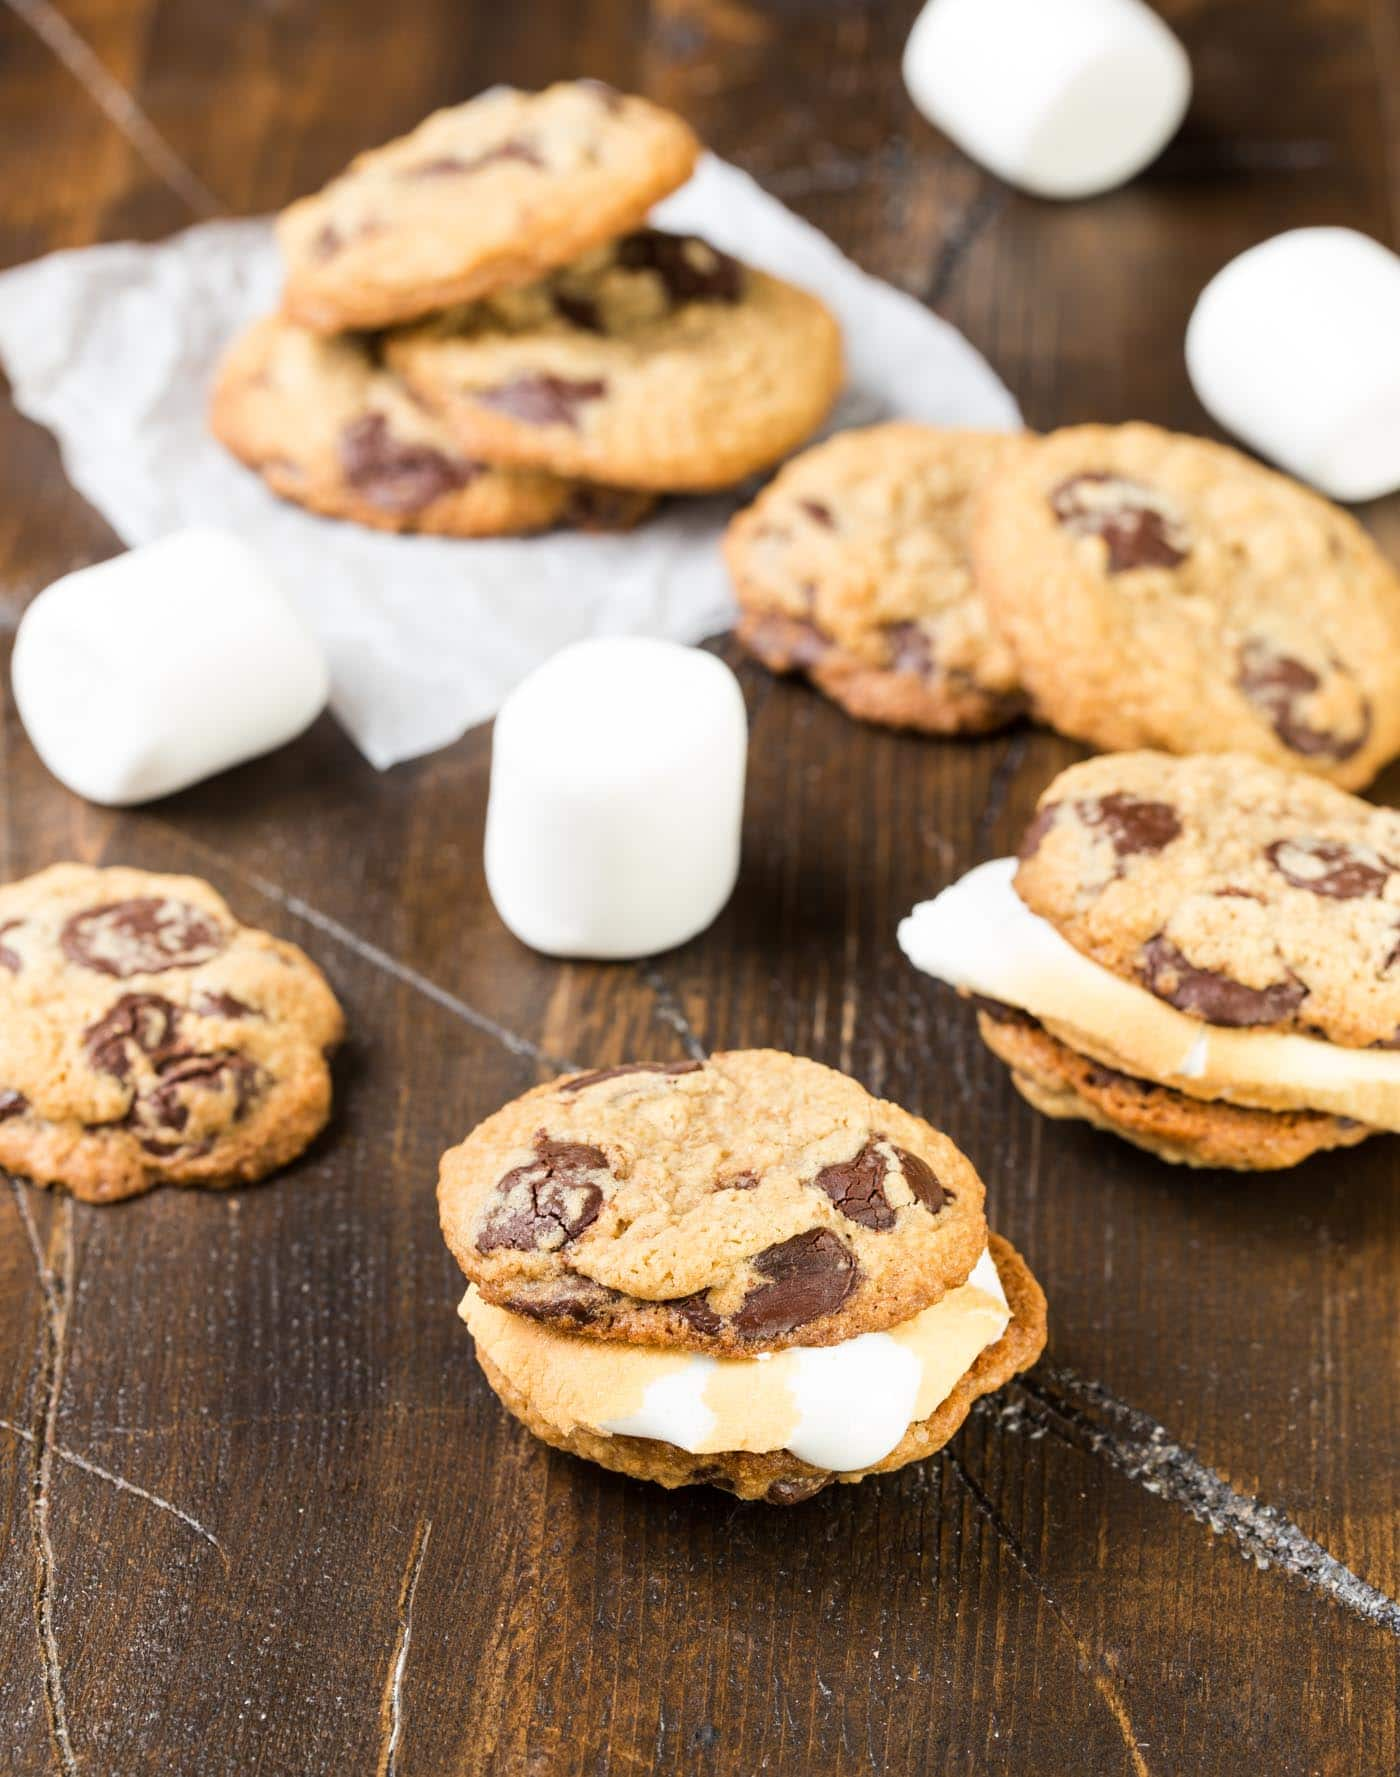 These gooey S'mores Cookie Sandwiches with Roasted Marshmallows are a fun new twist on a classic summer treat. Add these cookies to your BBQ menu today!